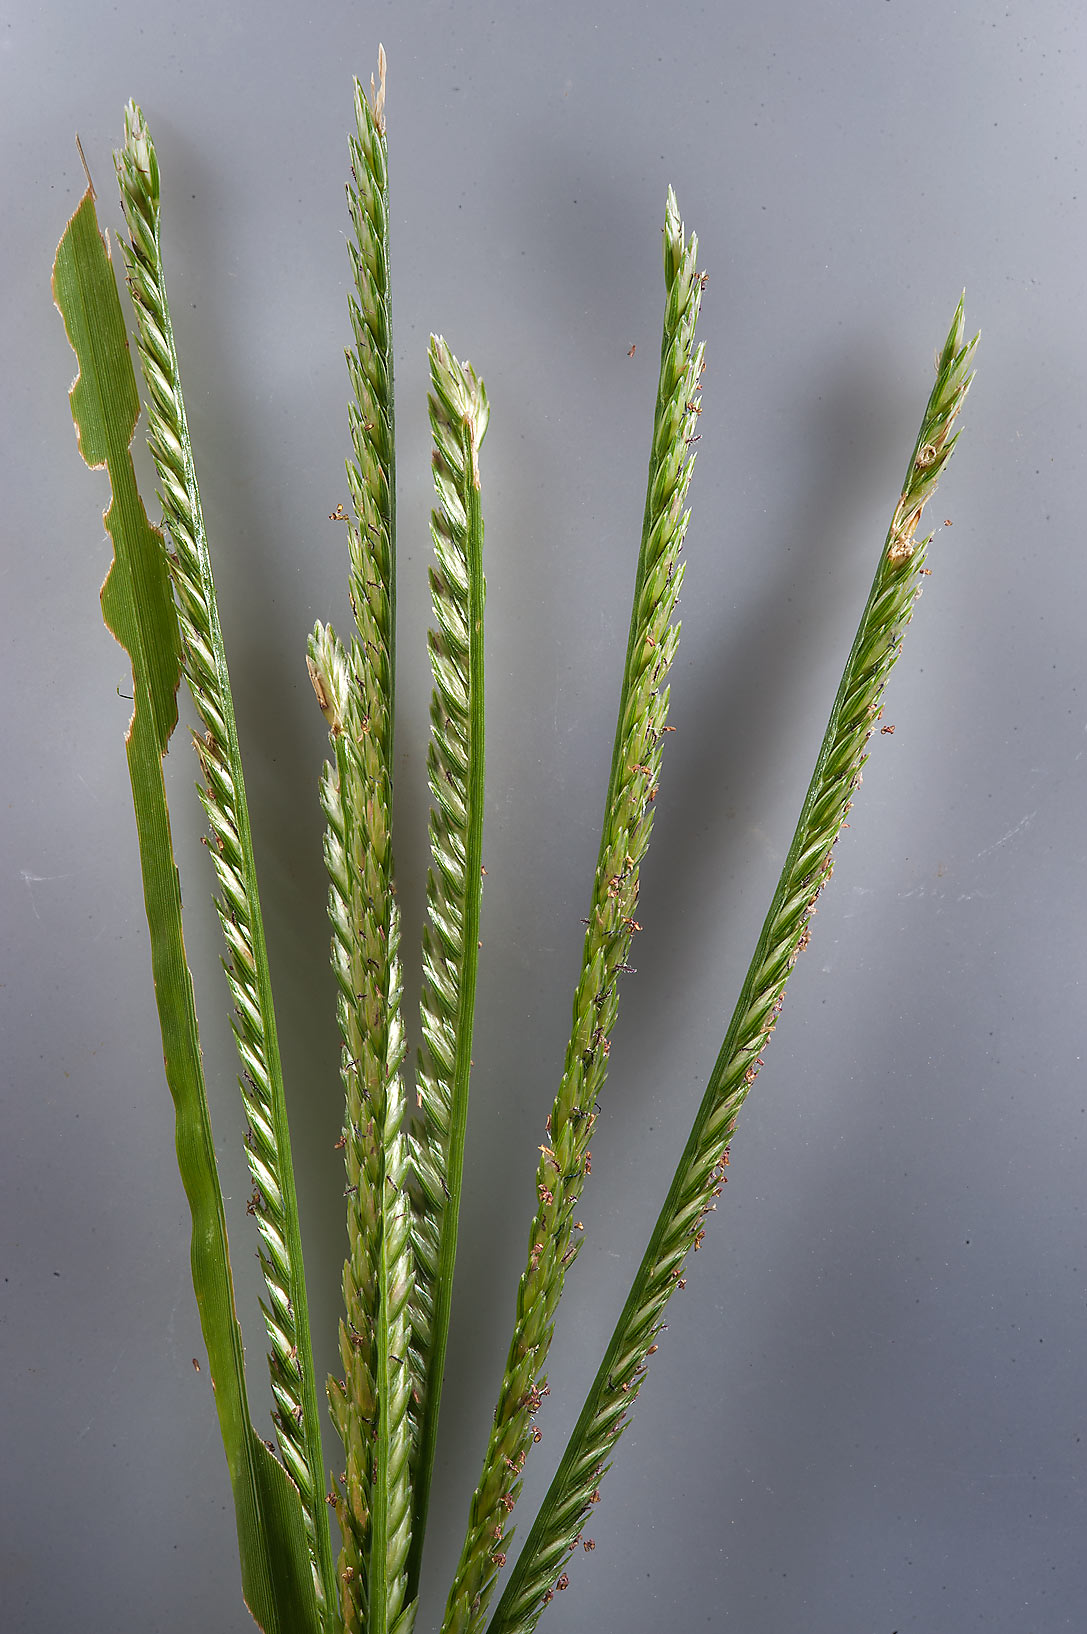 Spikelet of goosegrass (finger millet, Eleusine...in Irkhaya (Irkaya) Farms. Qatar